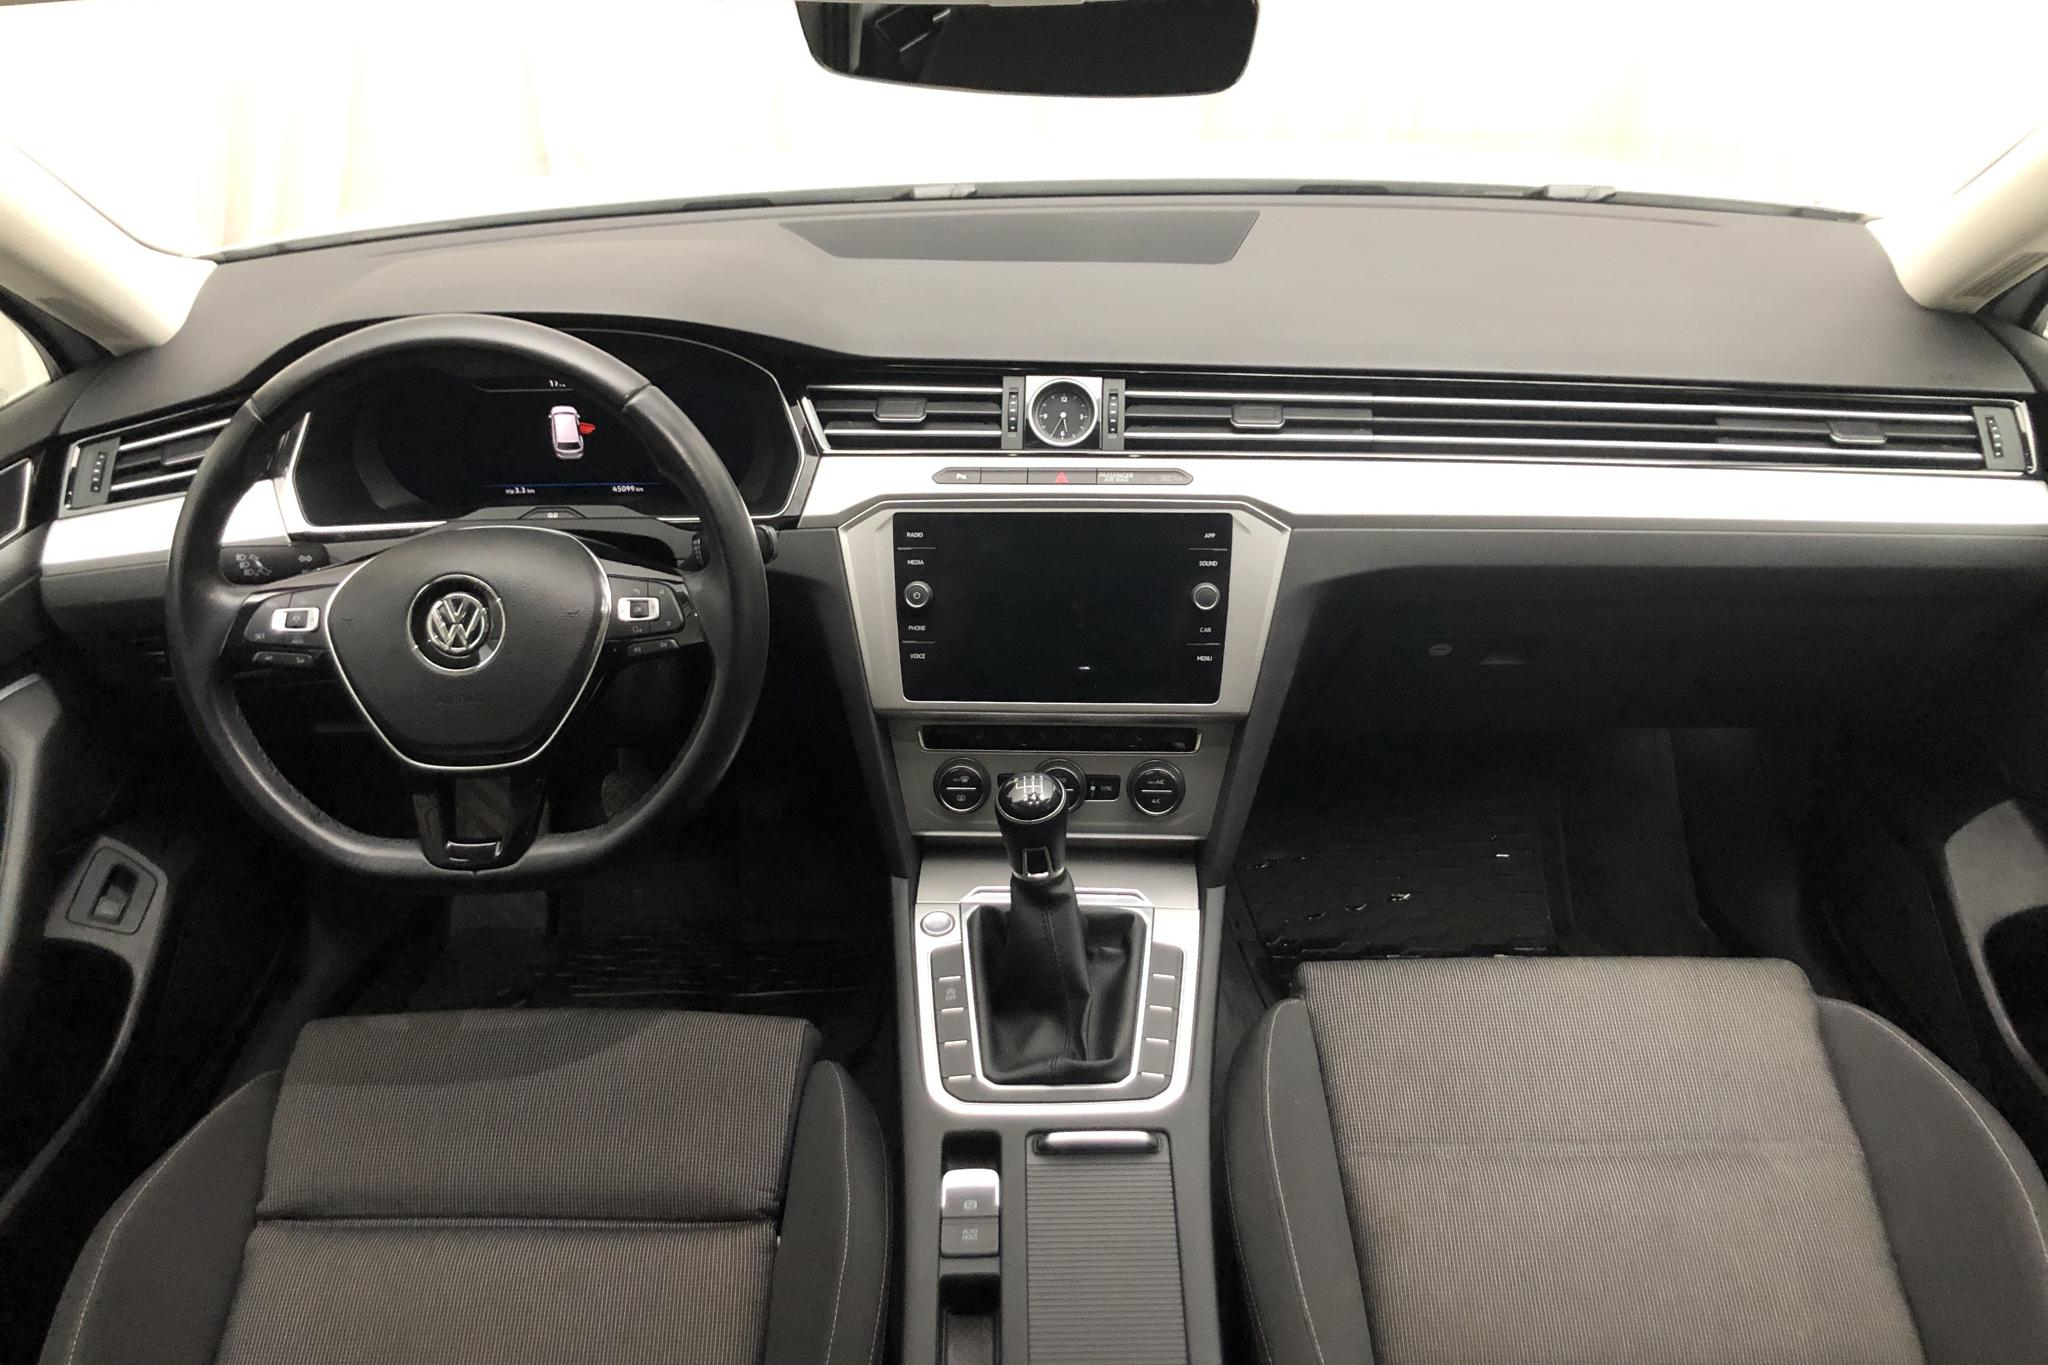 VW Passat 1.4 TSI Sportscombi (150hk) - 45 090 km - Manual - white - 2018